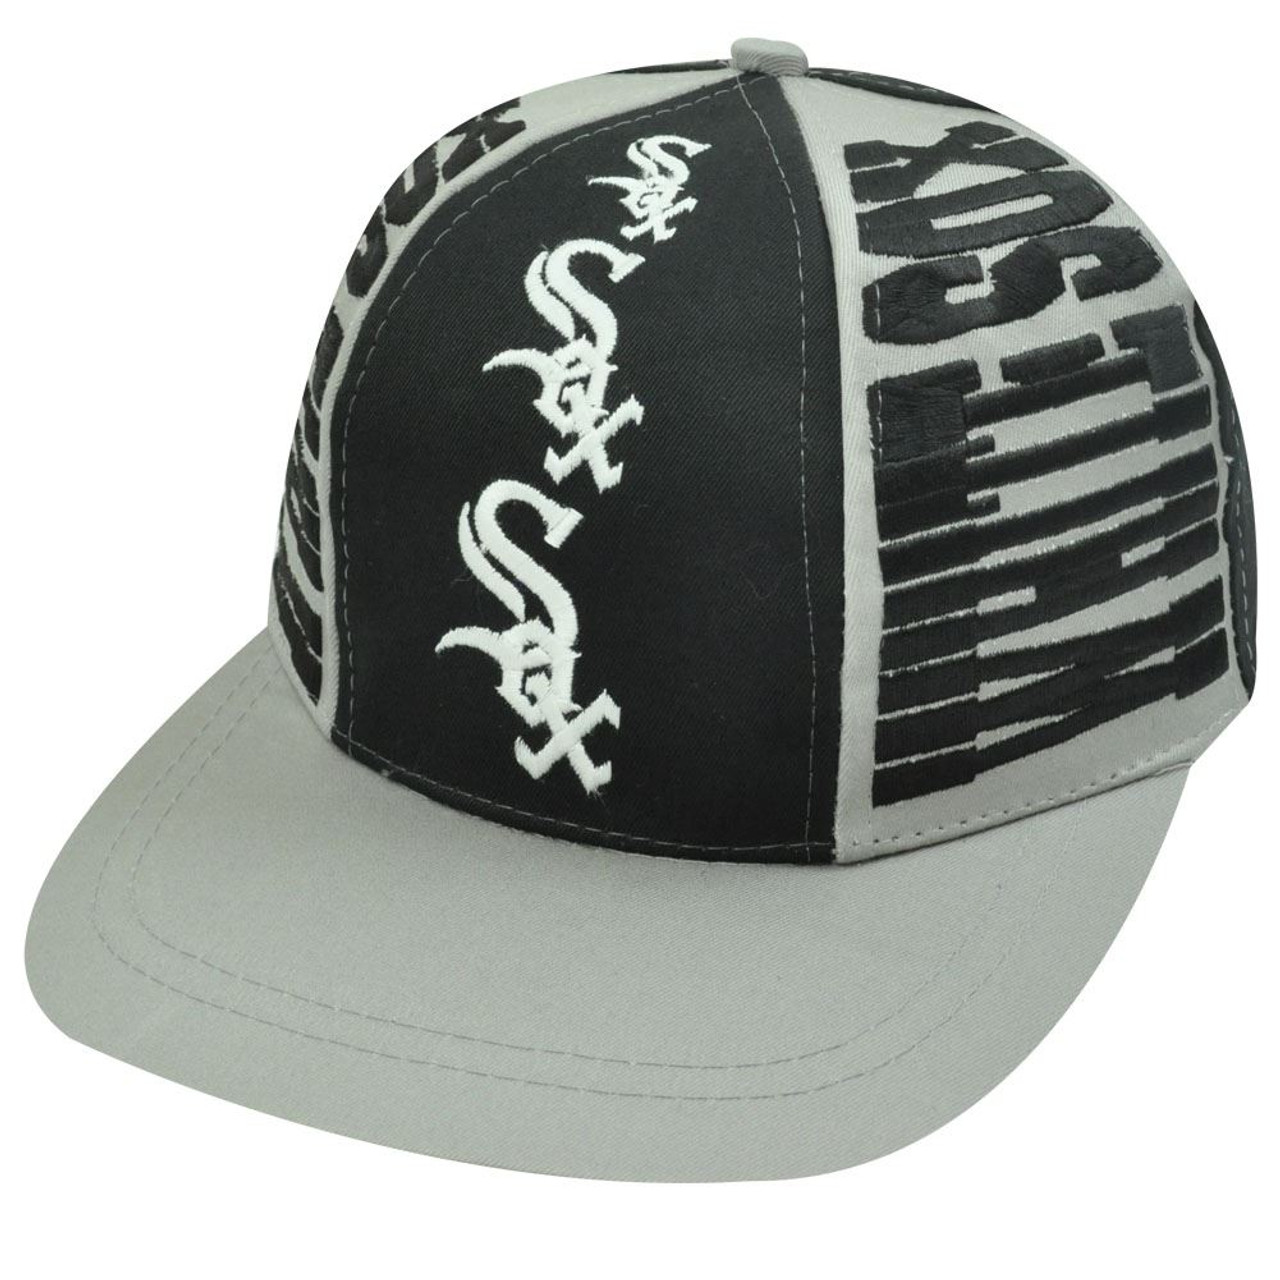 d438a735 MLB CHICAGO WHITE SOX OLD SCHOOL SNAPBACK FLAT BILL HAT